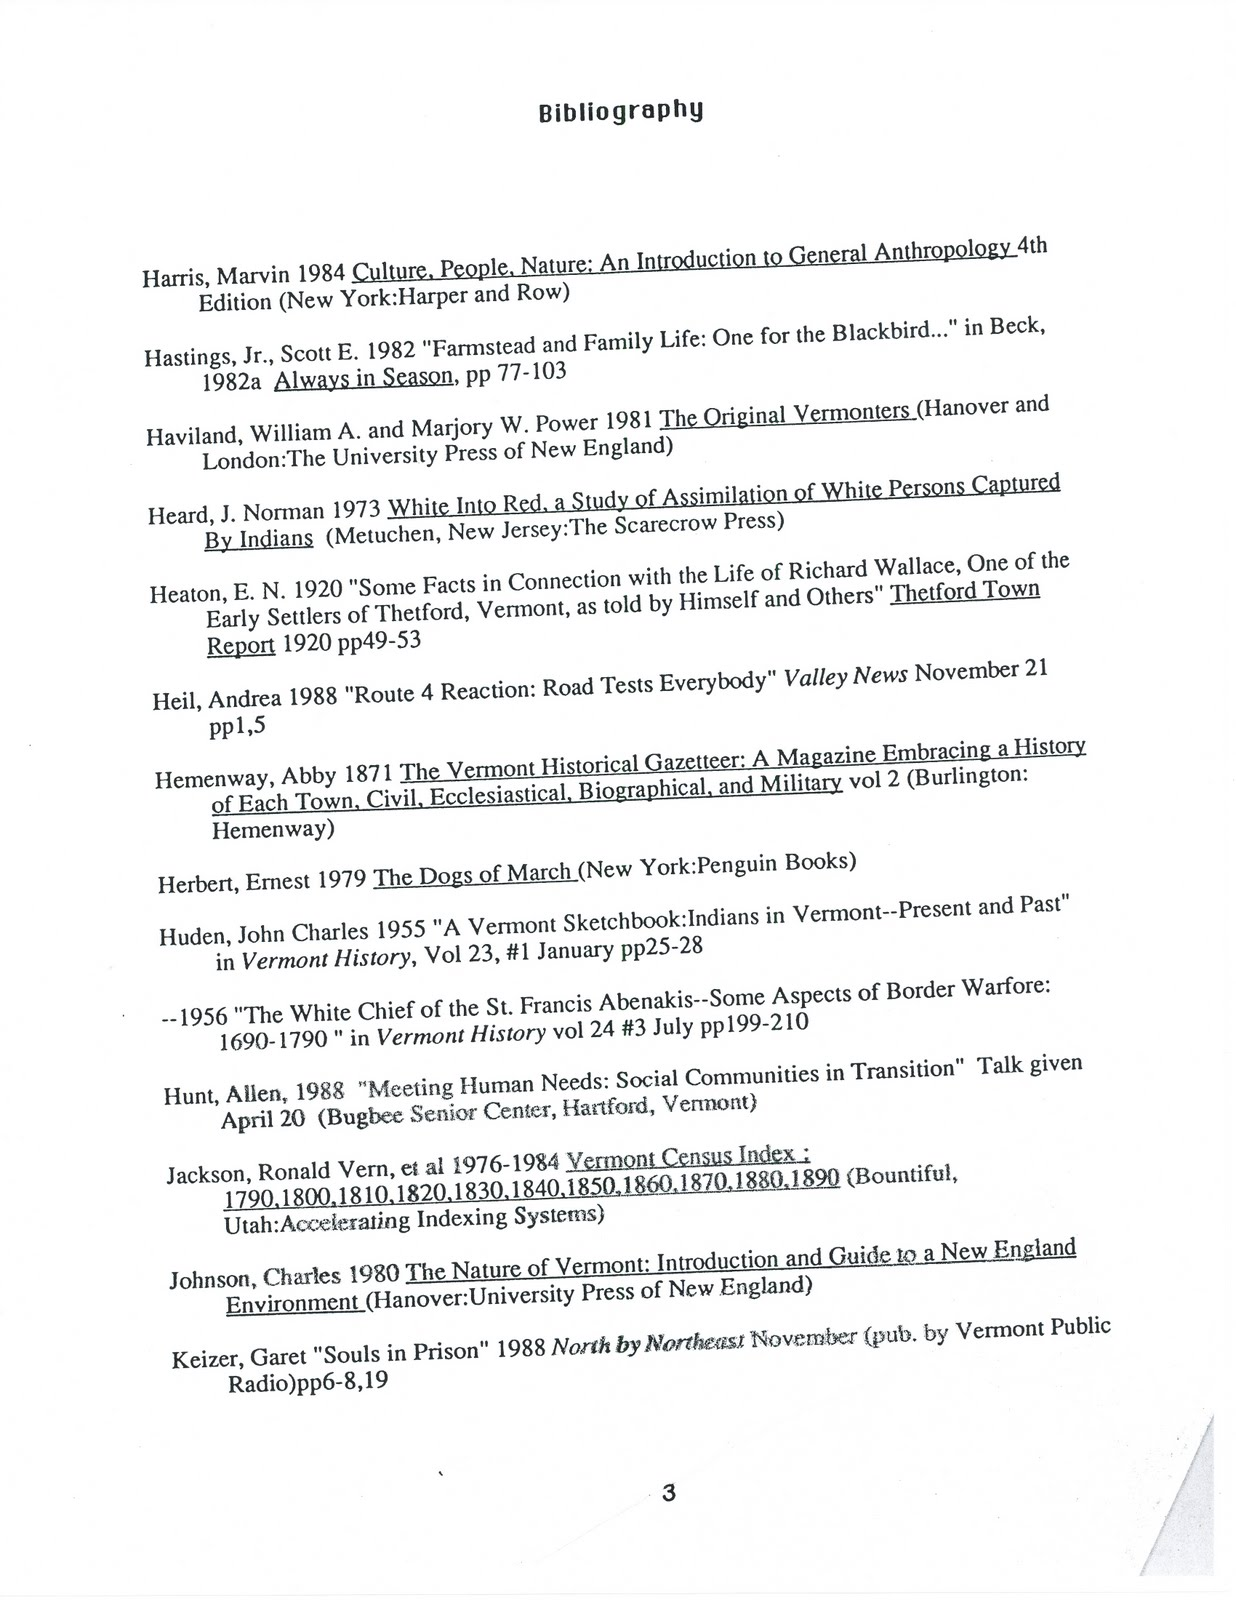 Sample of a bibliography page